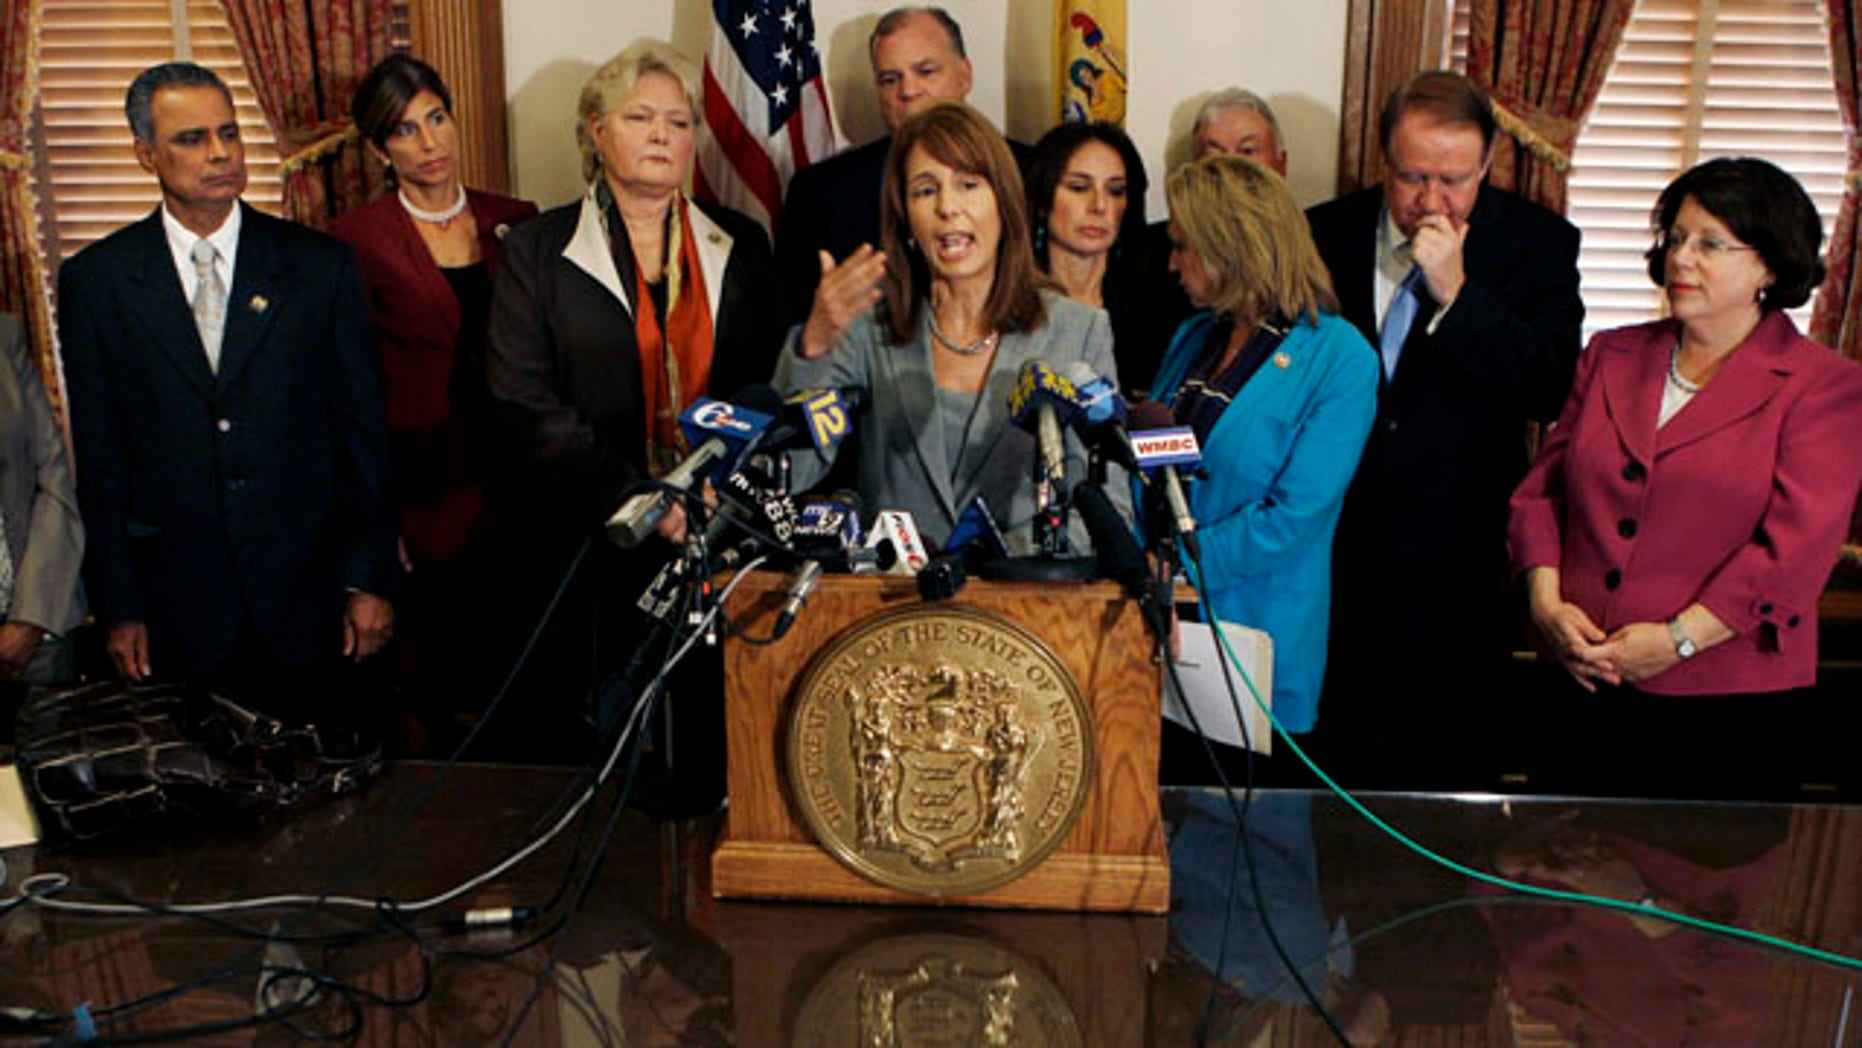 Oct. 25, 2010: New Jersey Sen. Barbara Buono, D-Edison, stands with other lawmakers in Trenton, N.J. as she answers a question about a bill they introduced to toughen the state's anti-bullying laws after the widely publicized suicide of Rutgers University student Tyler Clementi.